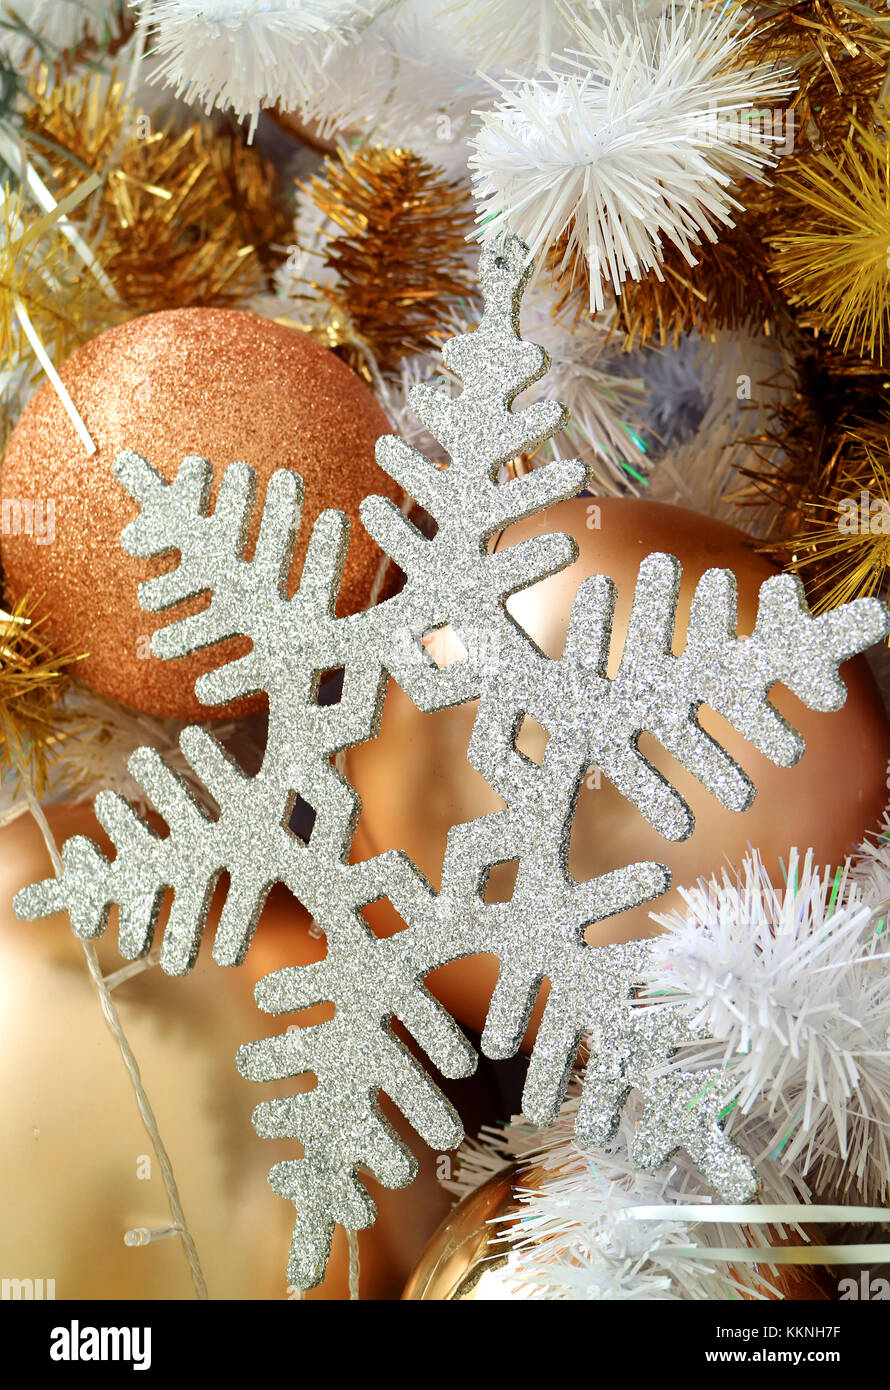 Silver Glitter Snowflake Shaped Christmas Ornament With Many Gold Stock Photo Alamy